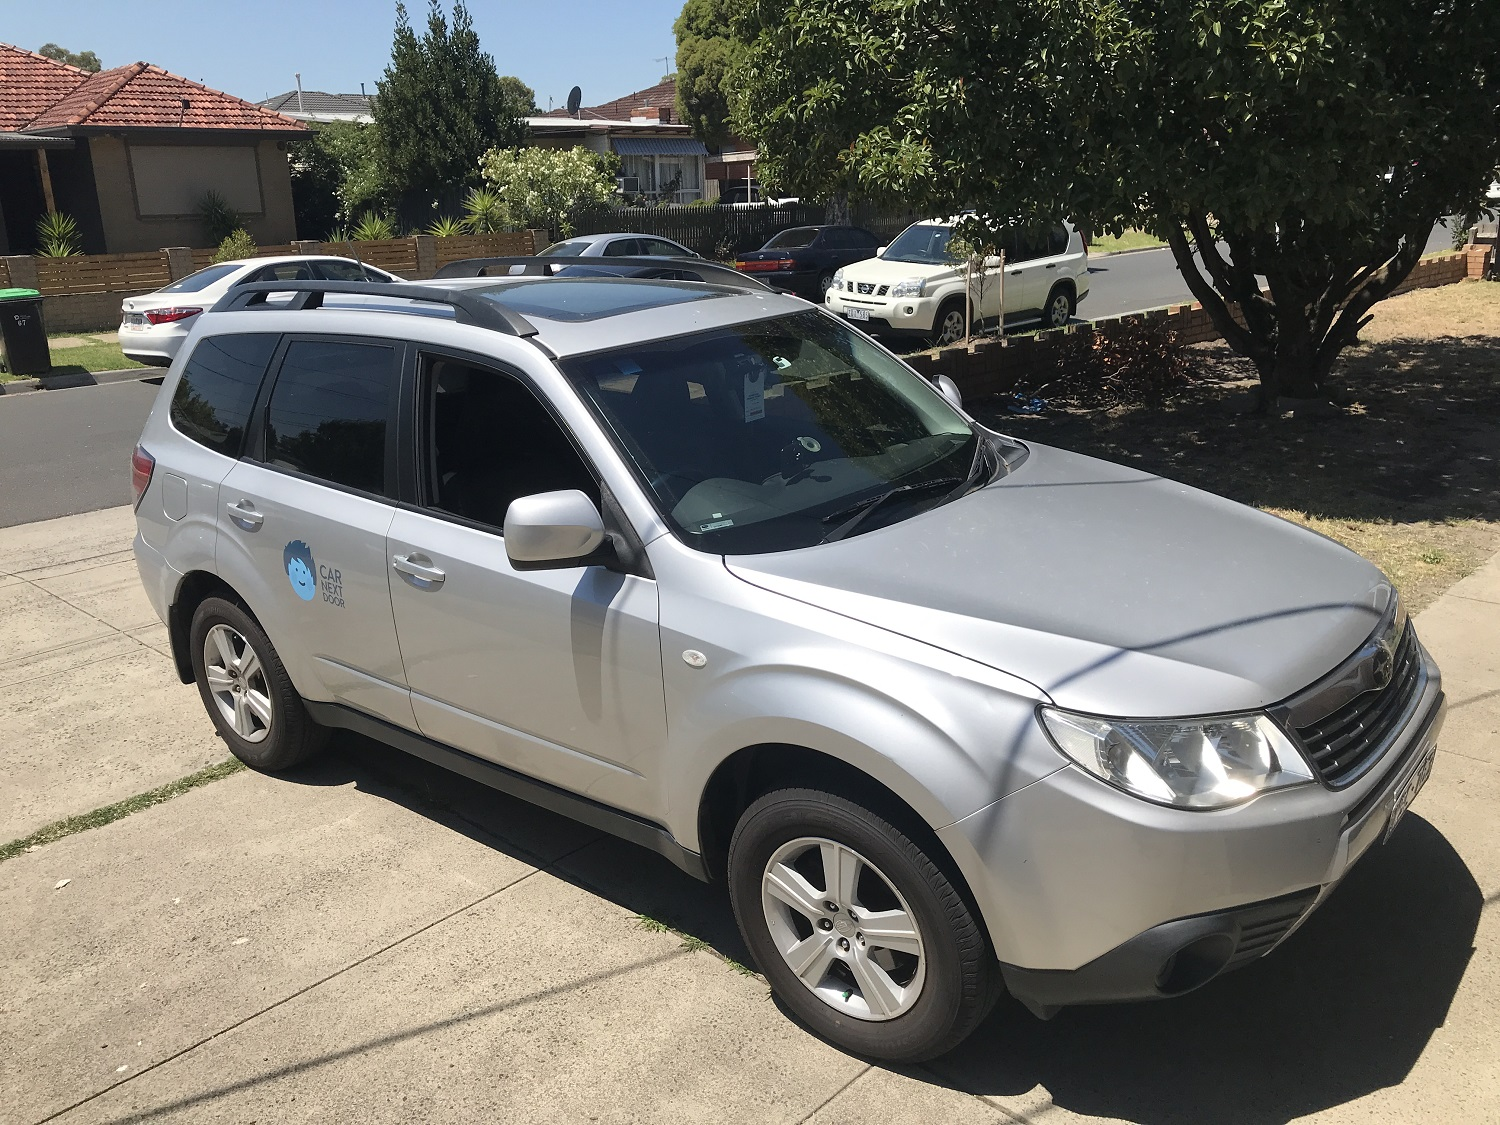 Picture of Hieu's 2008 Subaru Forester